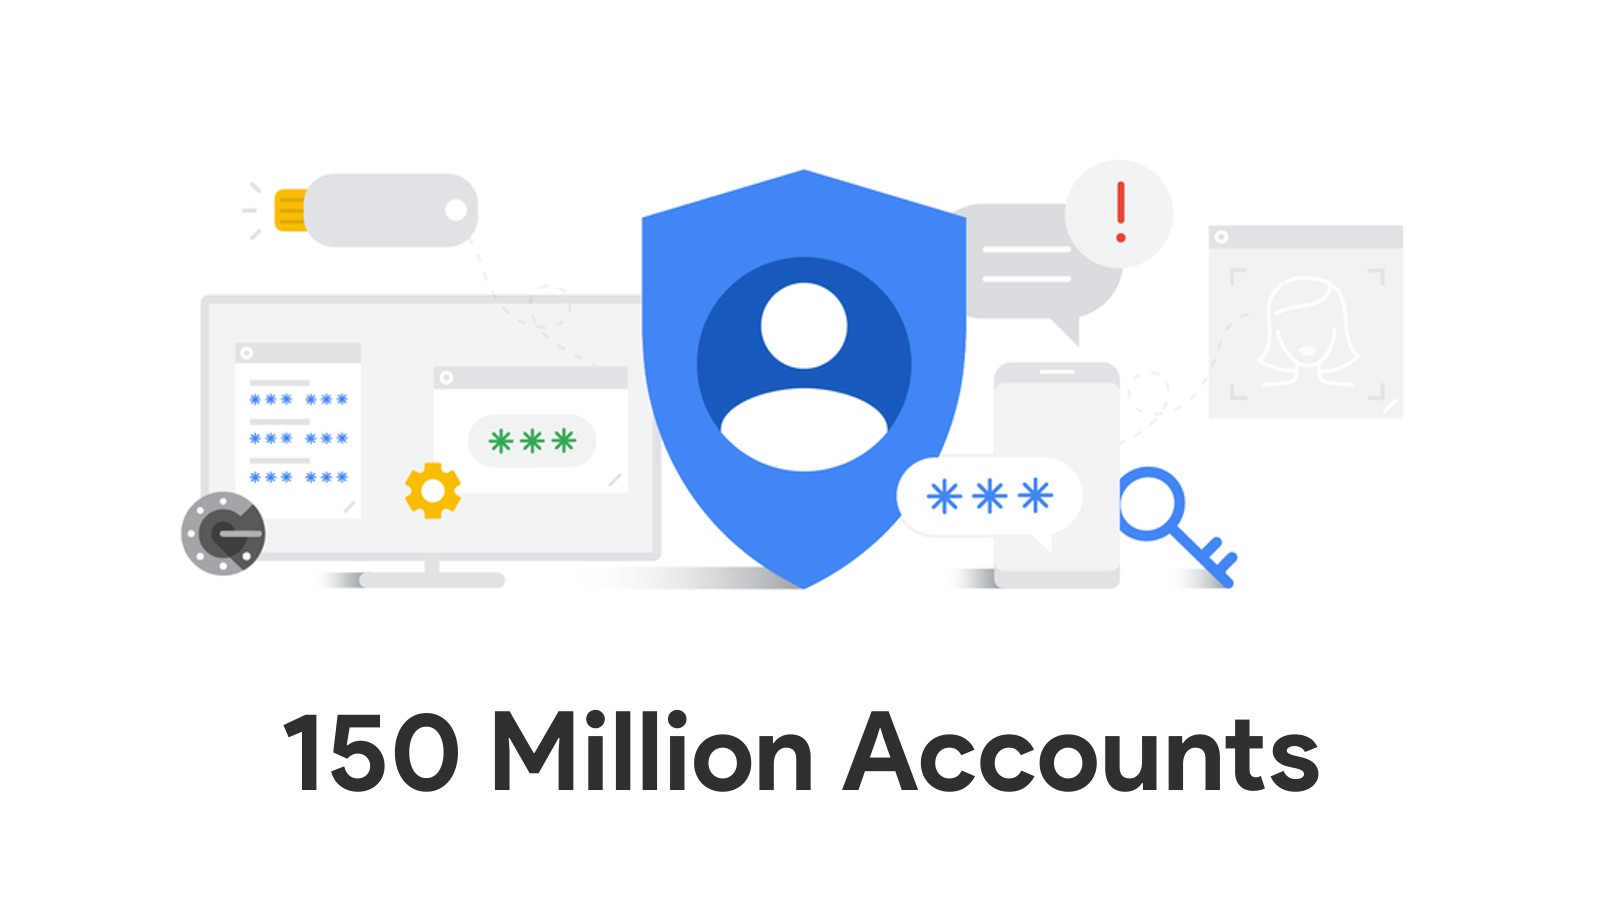 150M Google accounts will be safer by end of year thanks to 2-step verification auto-enroll